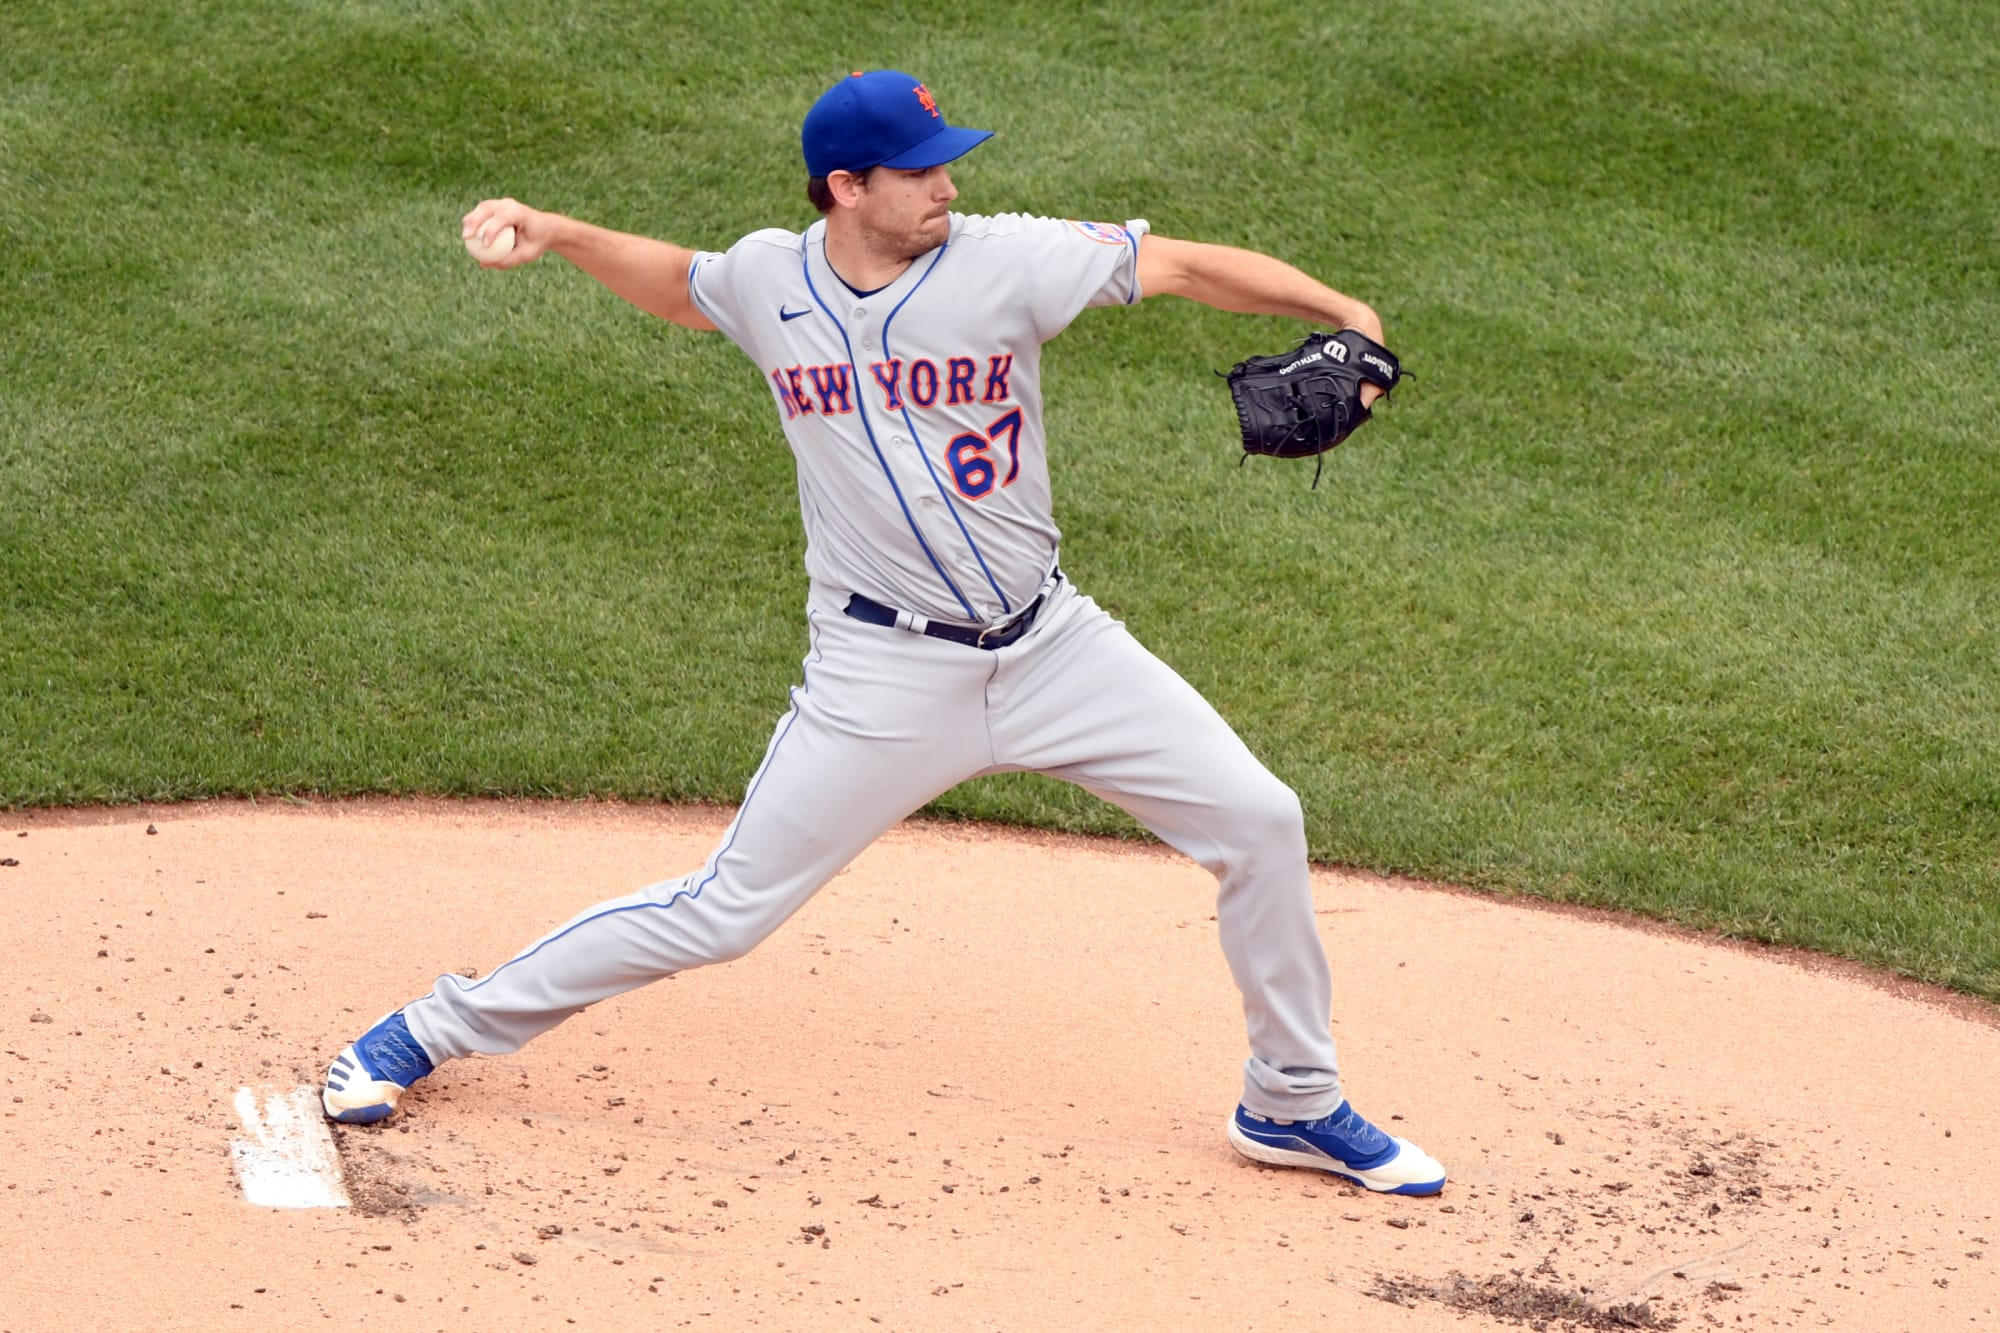 Yankees and Mets should pursue this trade to benefit one another